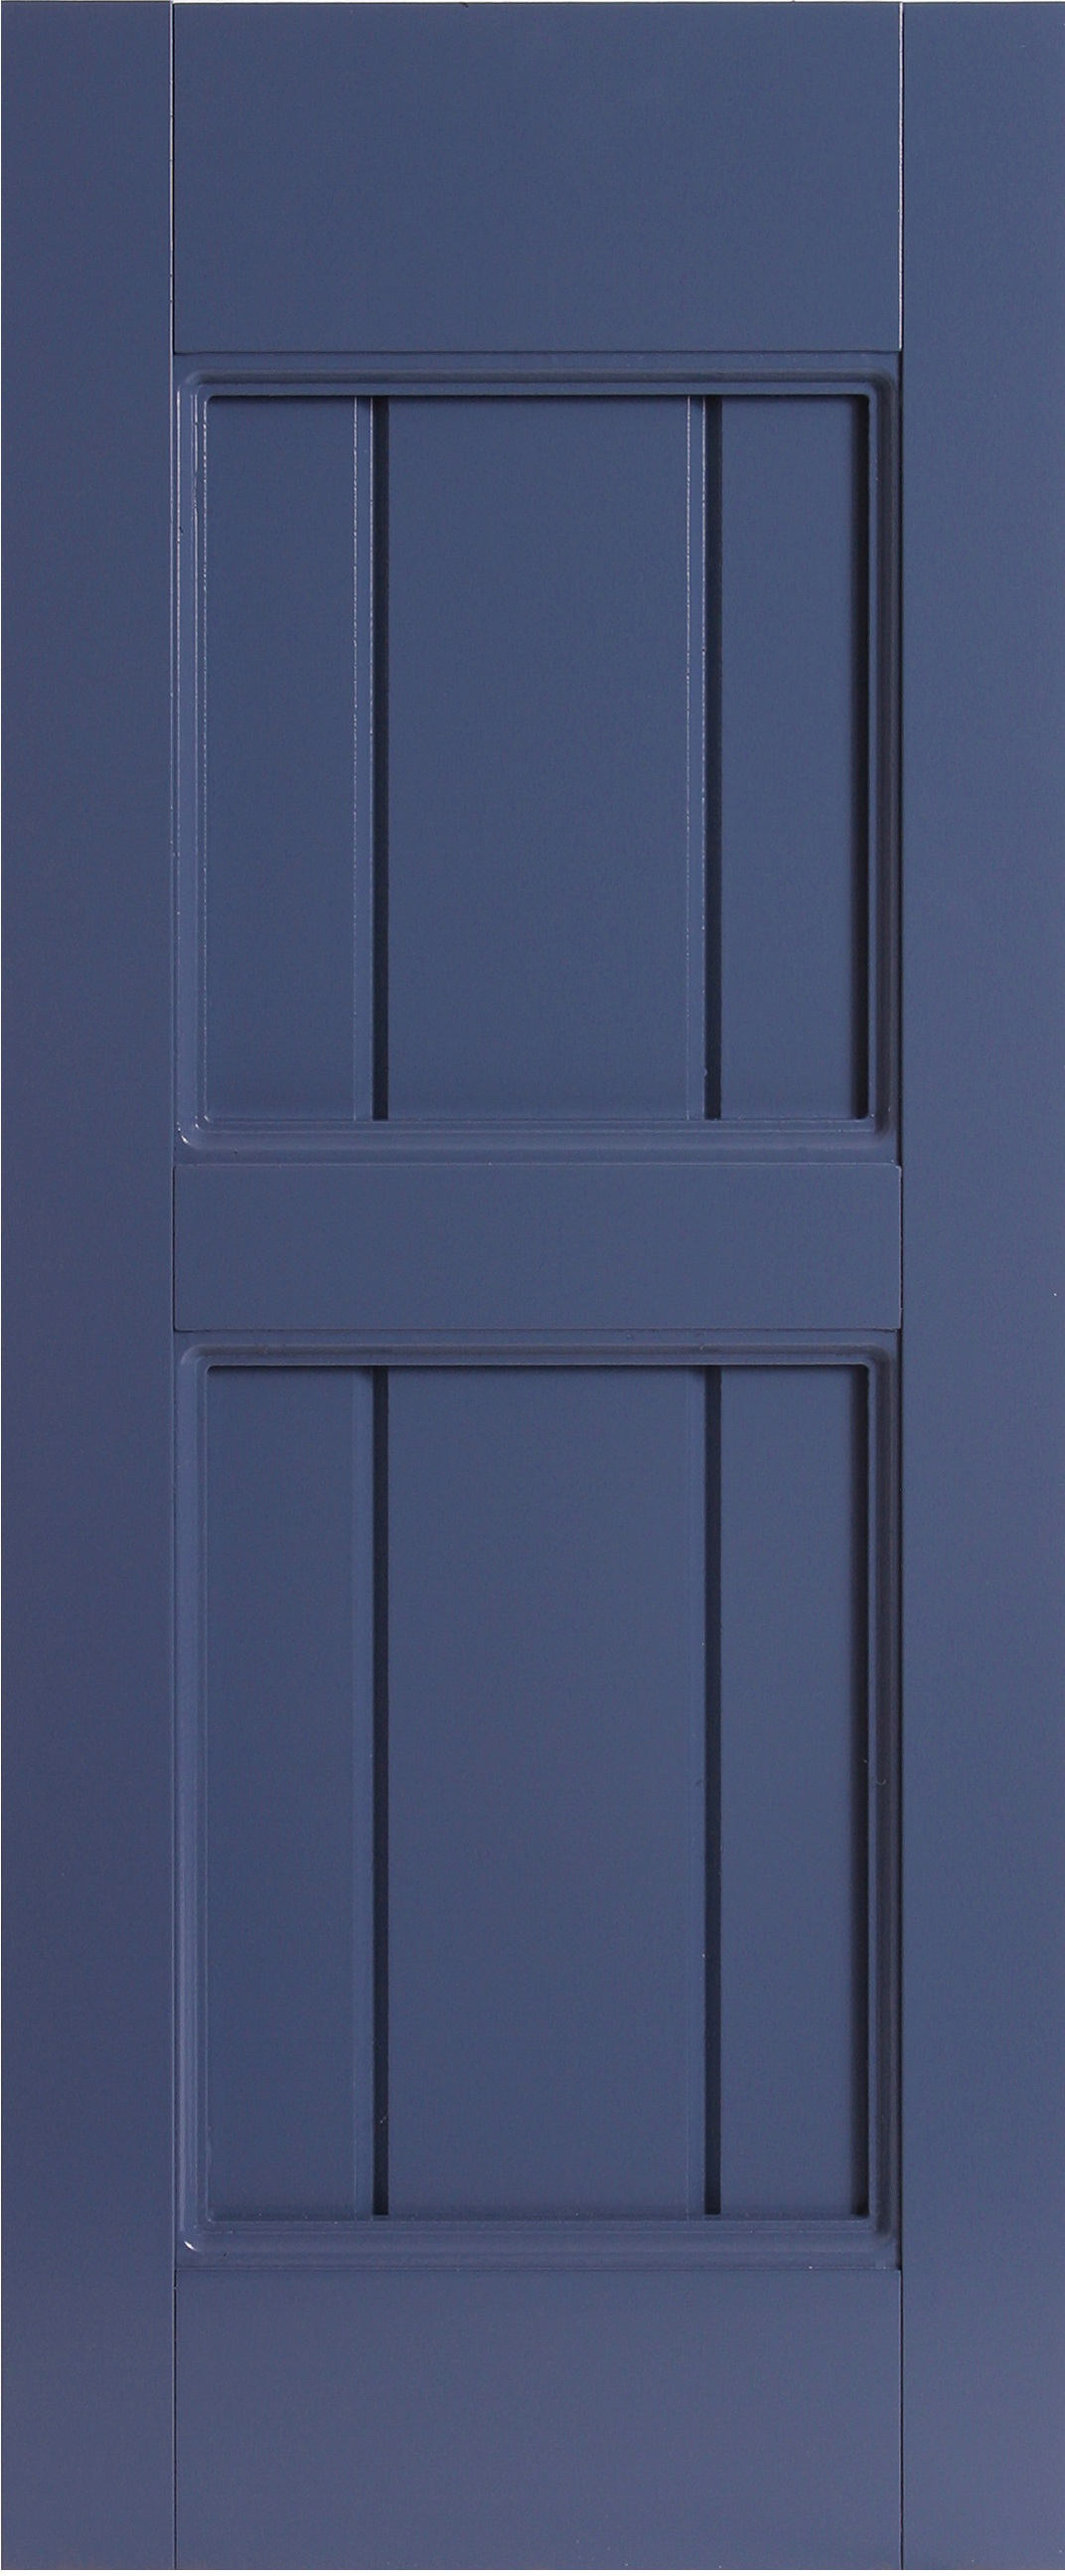 PVC Composite Shutters - V-Groove Style